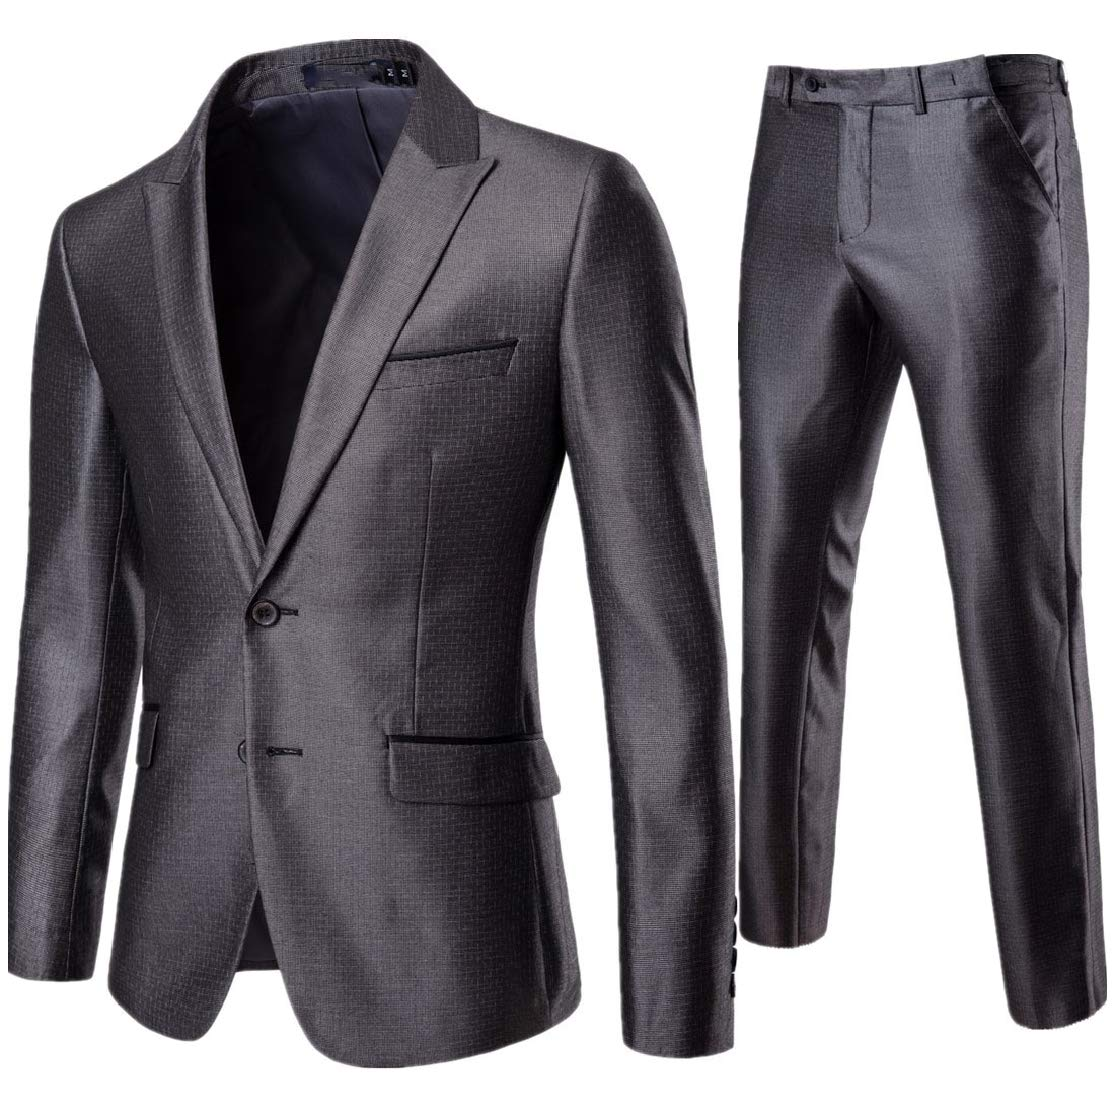 Comaba Mens Bussiness 2 Buttons Gentleman Party Blazer Jacket /& Trousers Set 2-Piece